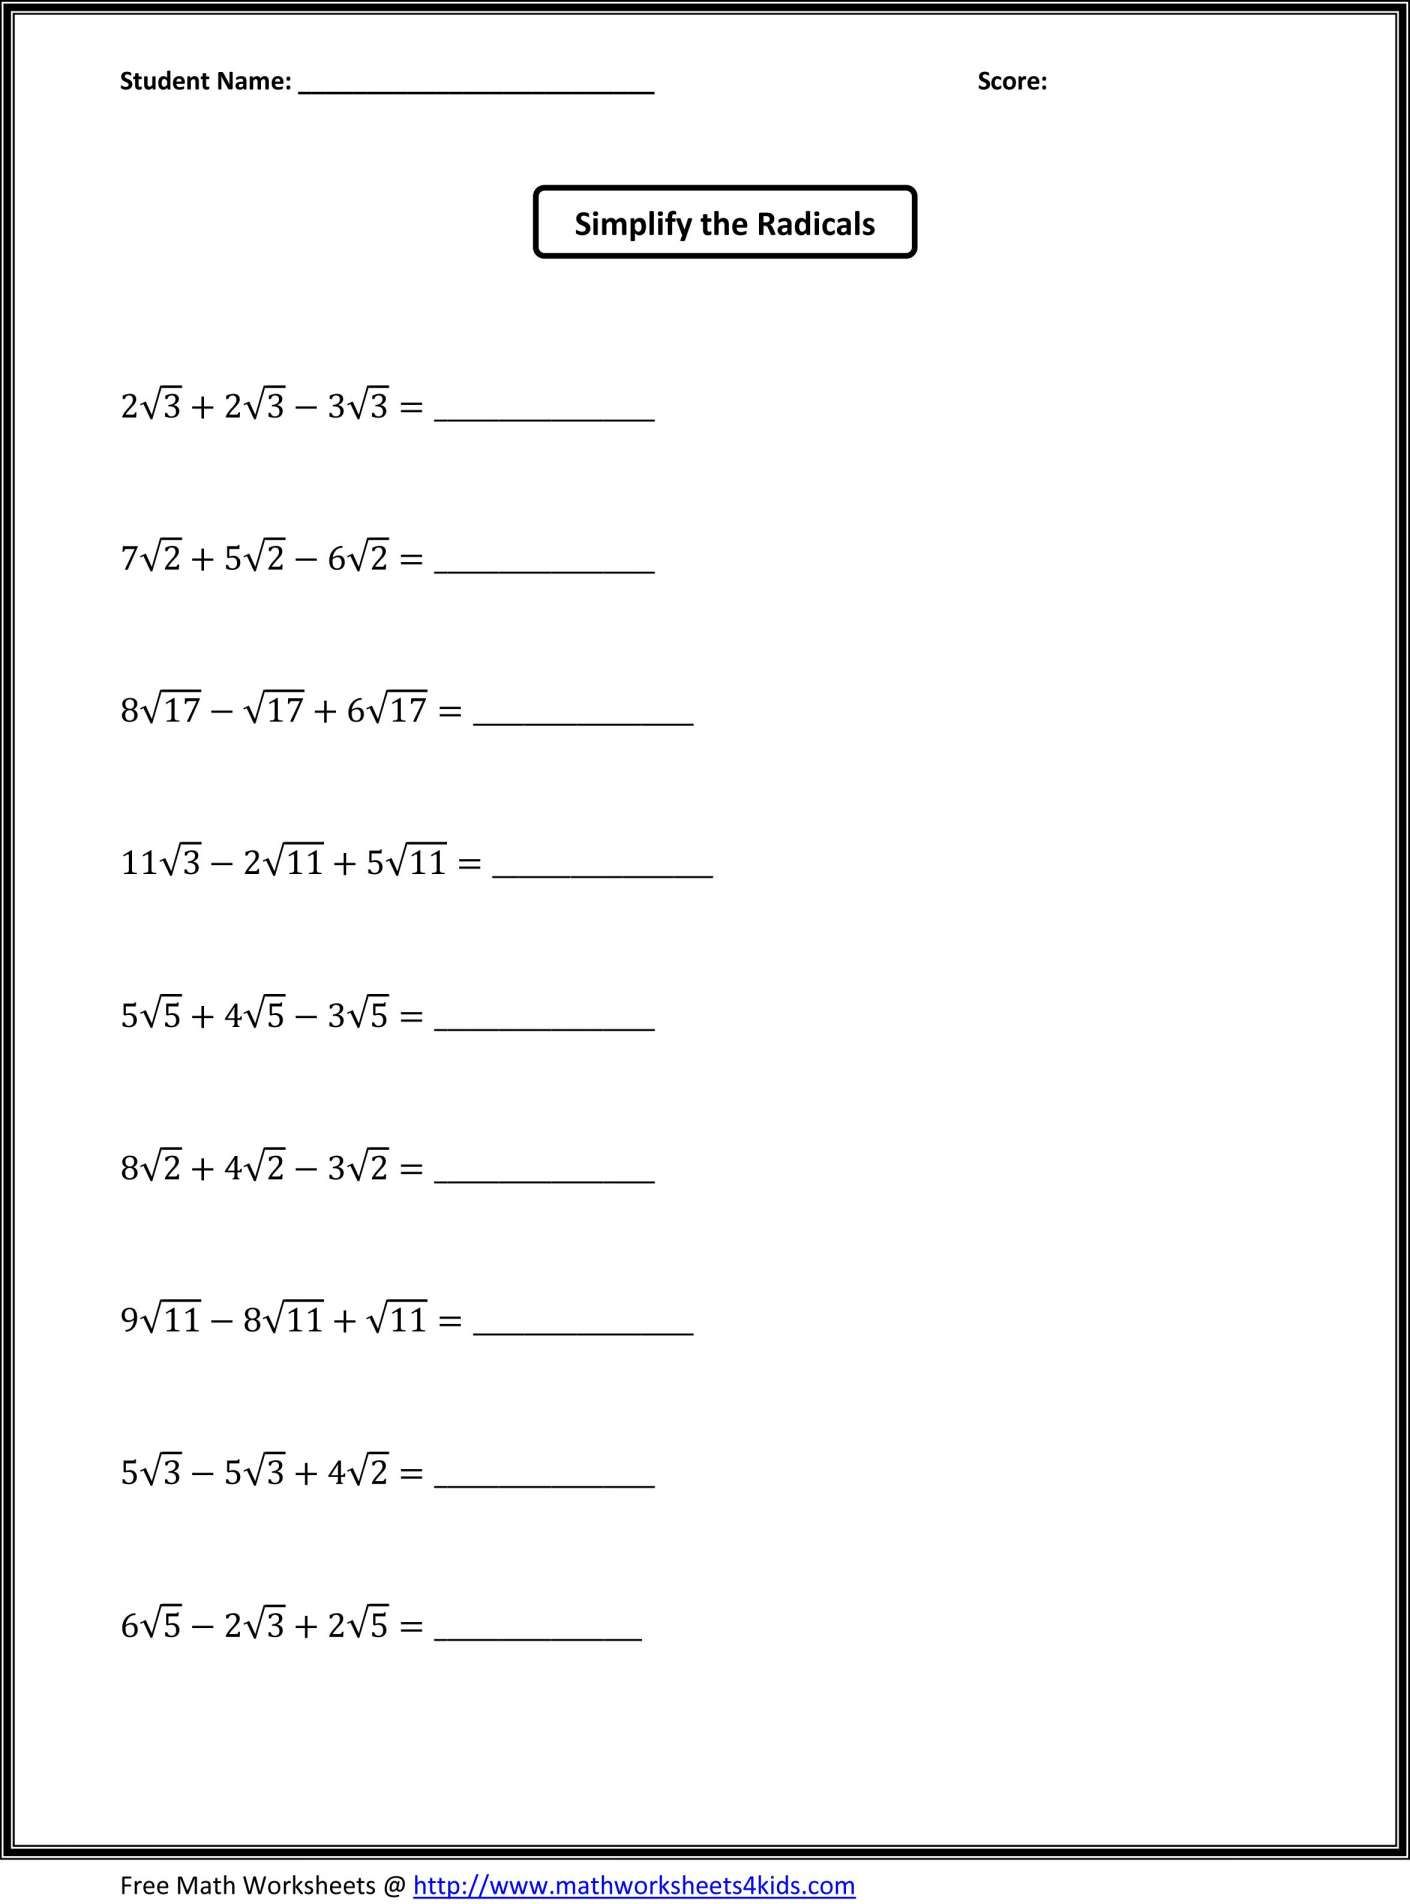 10 A Math Worksheet For 6th Grade